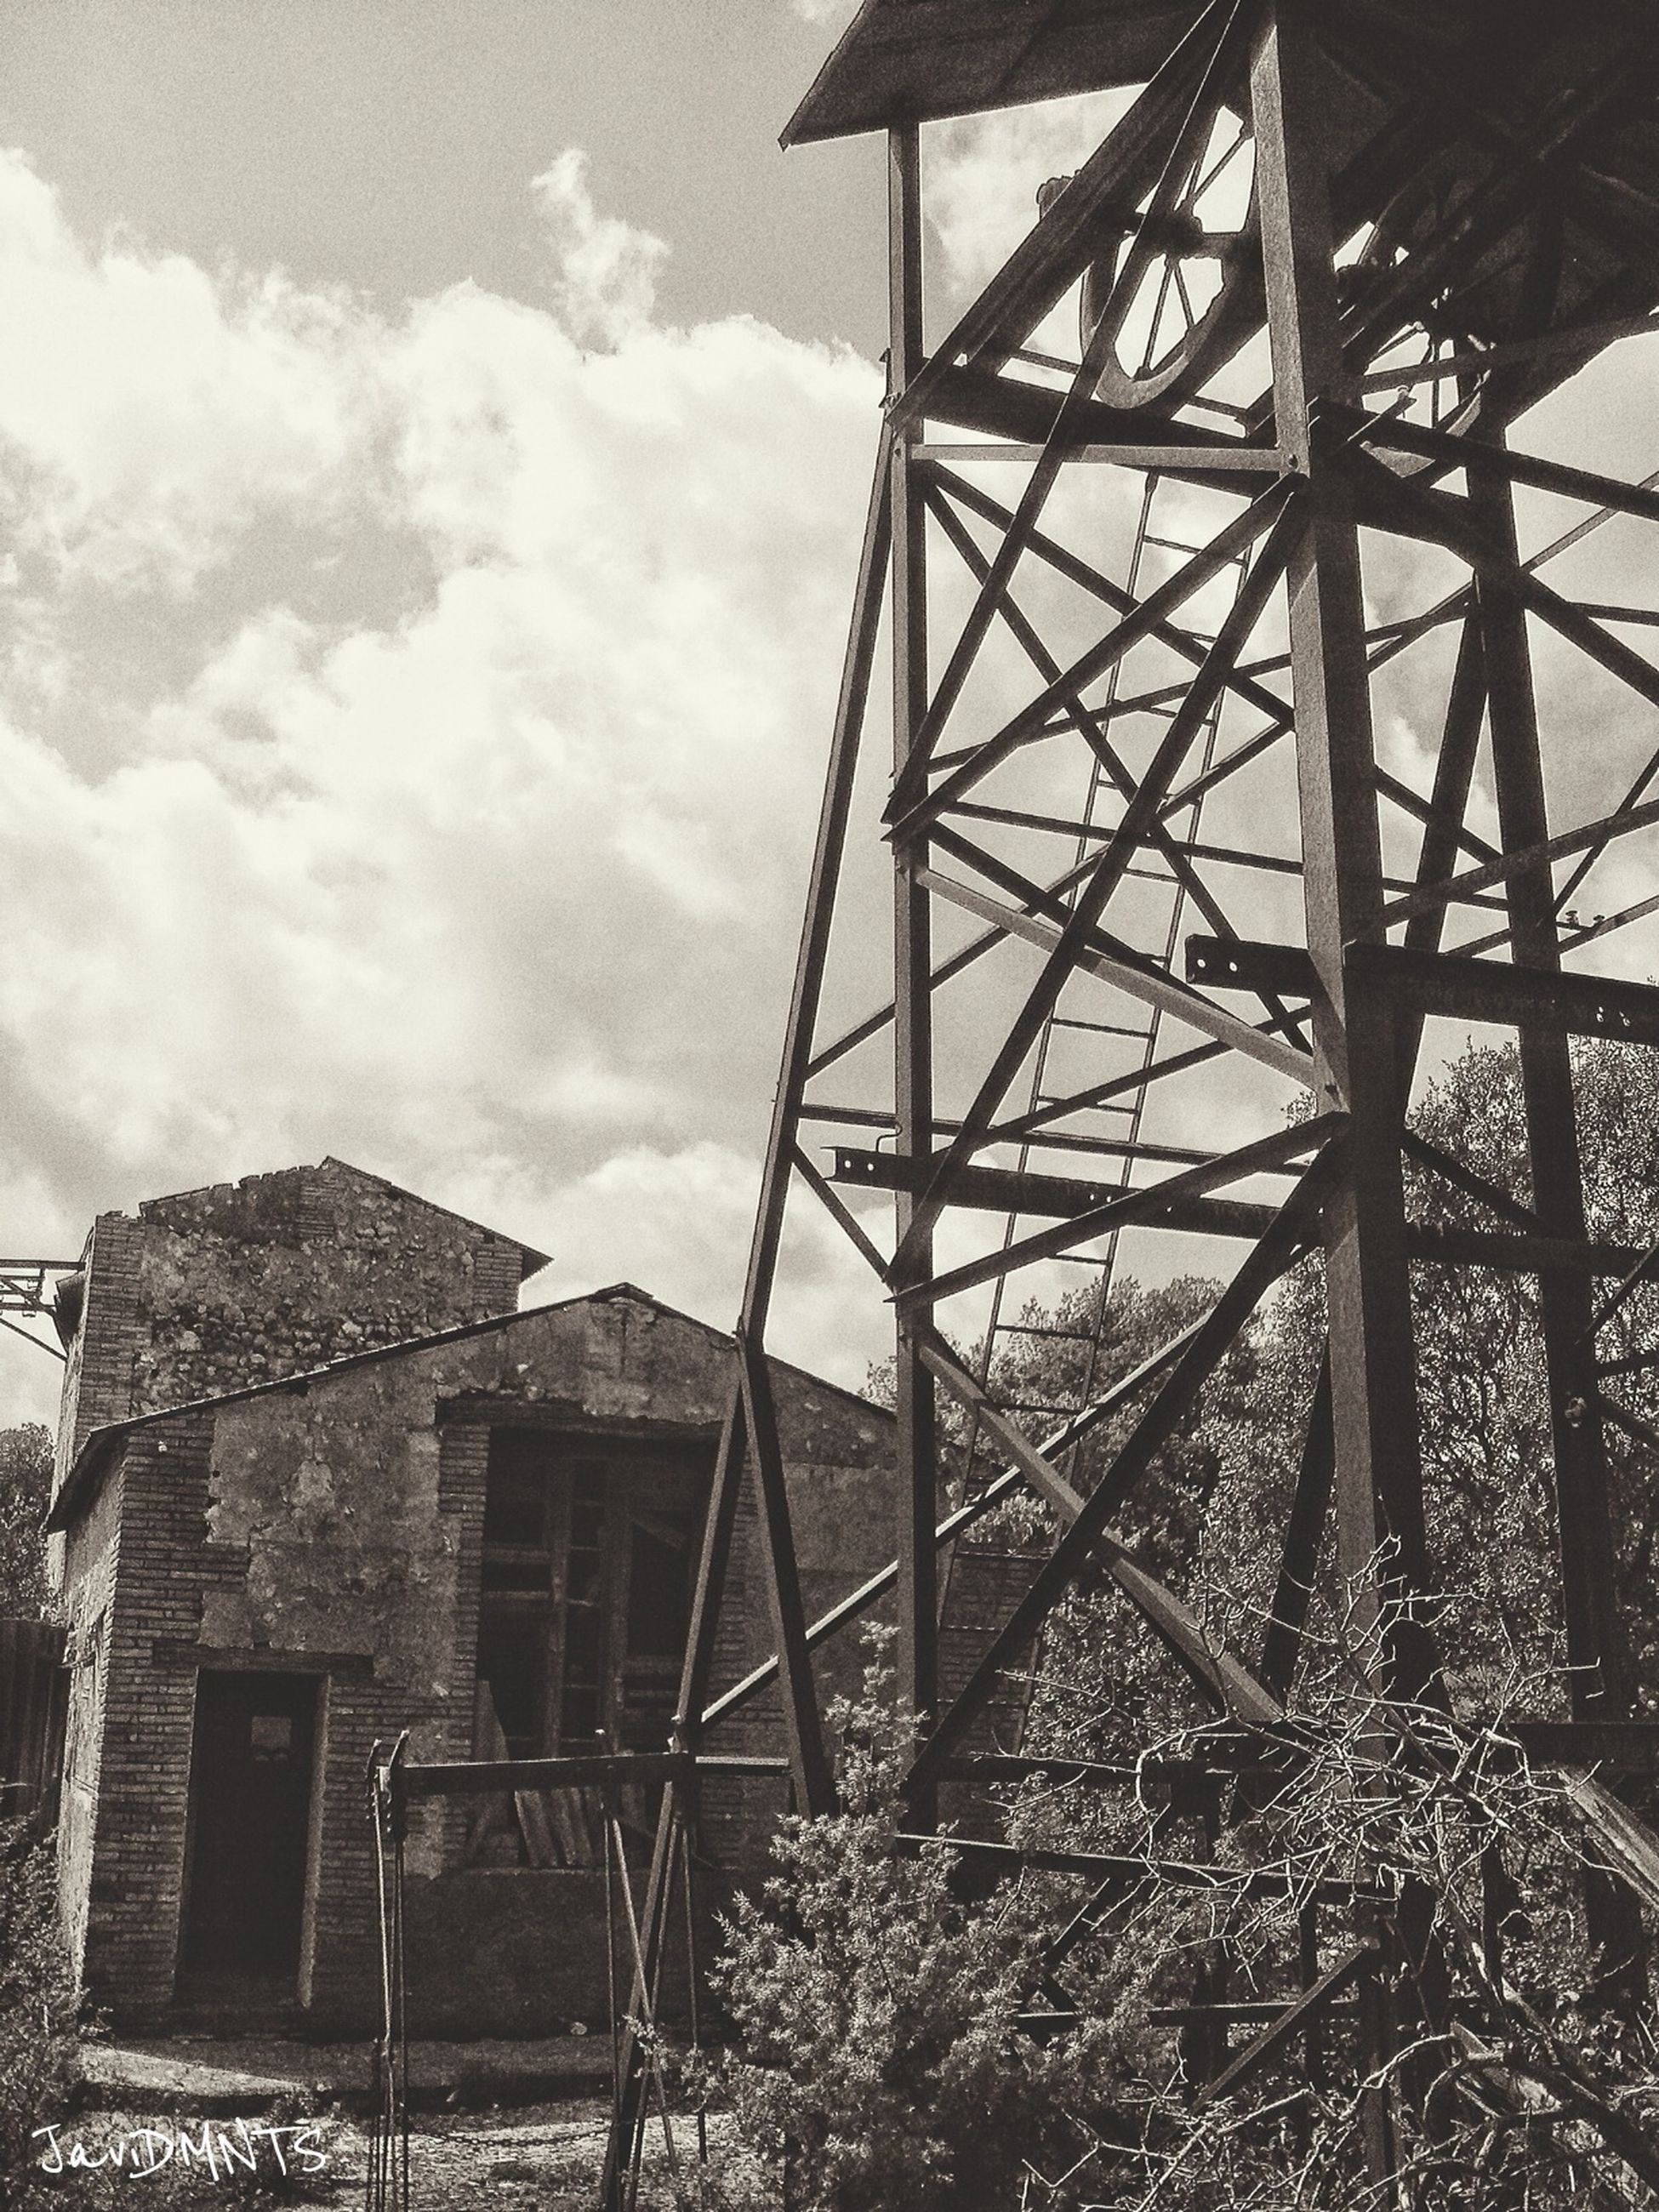 built structure, architecture, sky, cloud - sky, abandoned, building exterior, low angle view, obsolete, metal, cloud, old, damaged, day, cloudy, deterioration, run-down, house, no people, field, outdoors